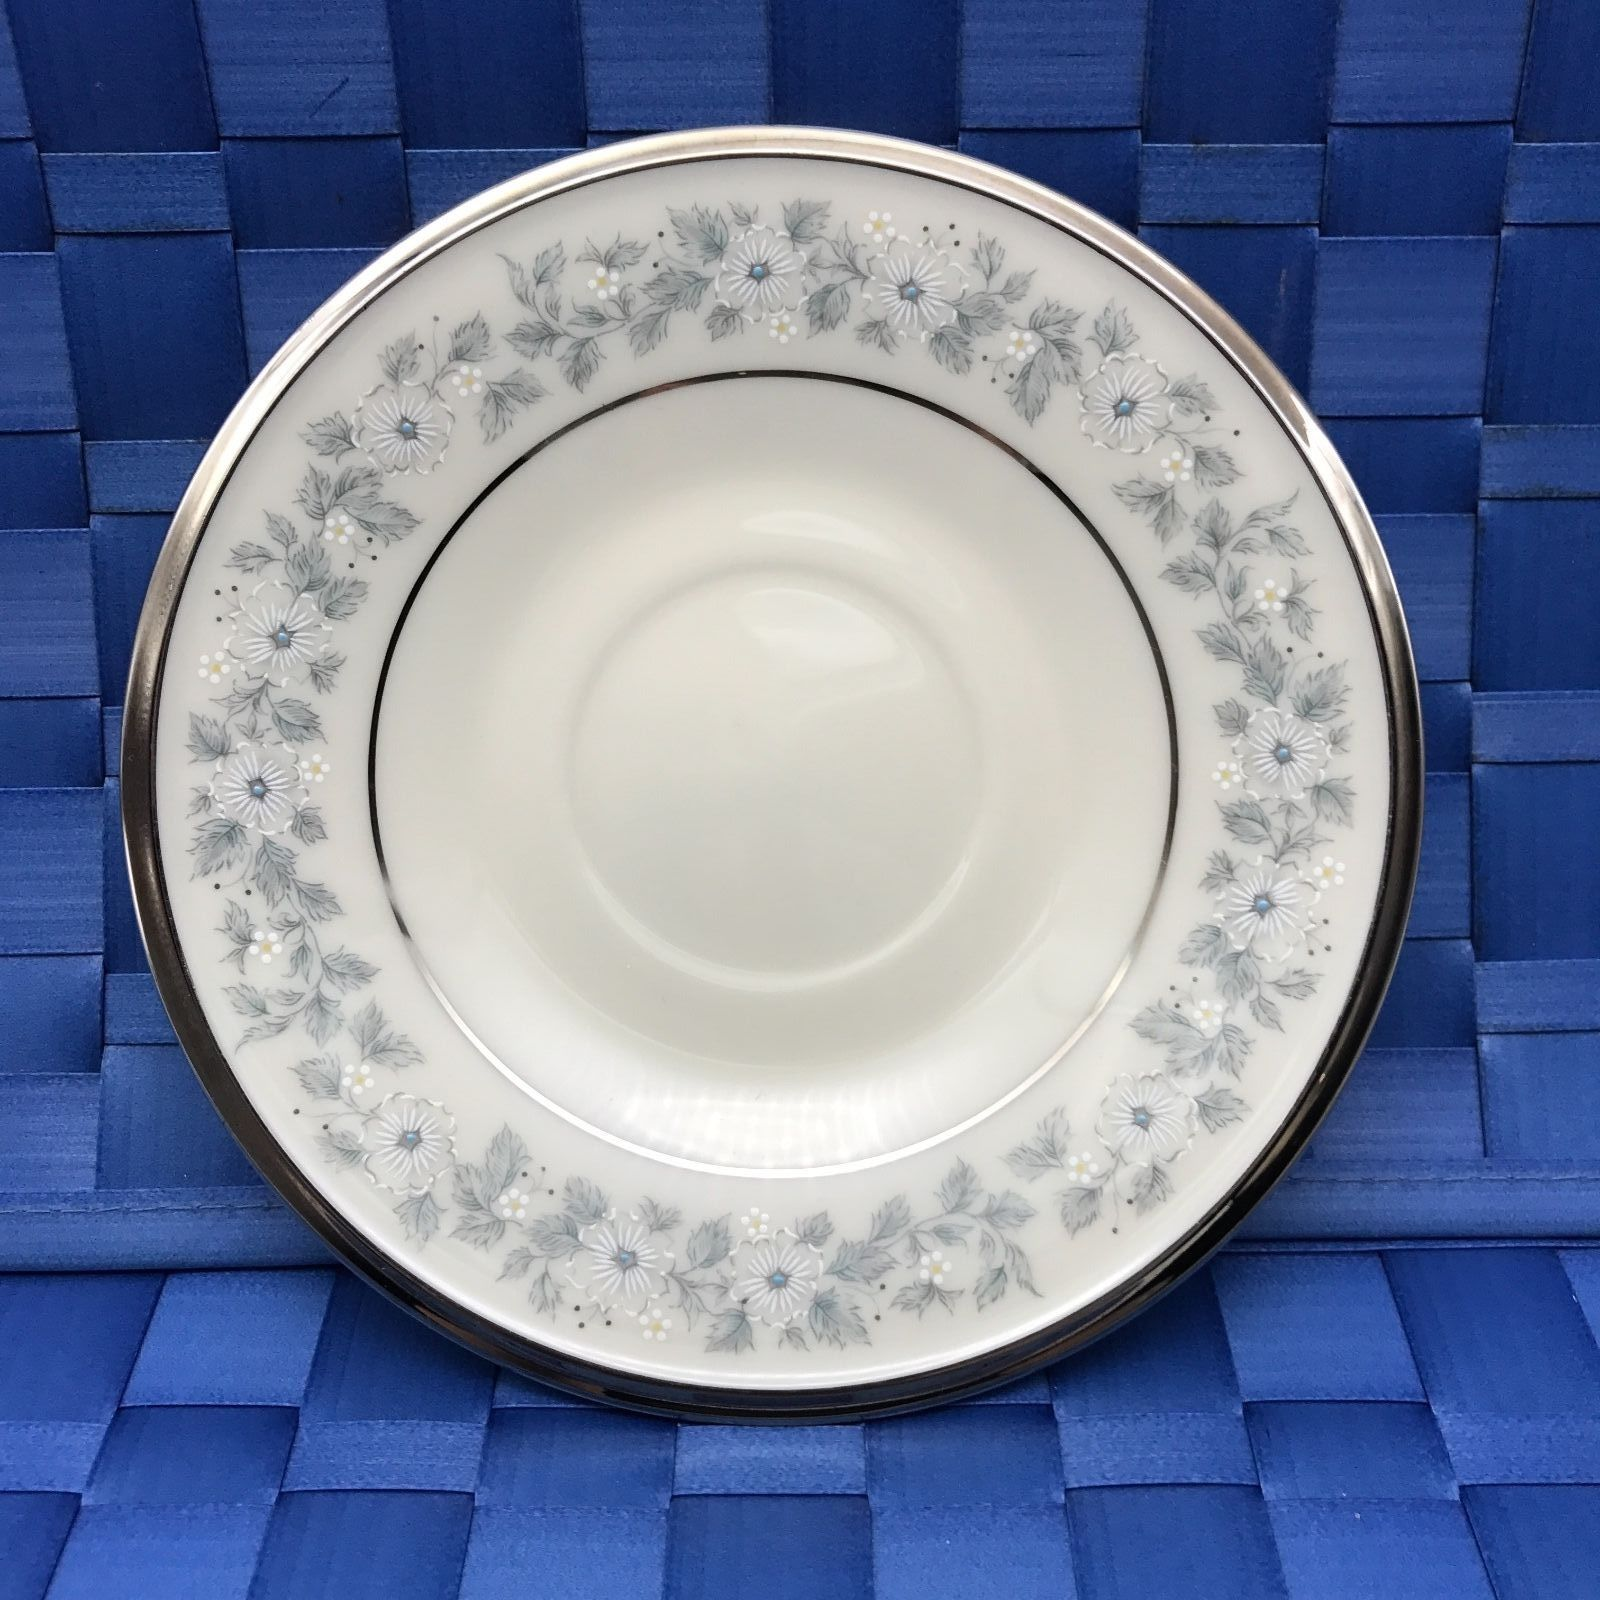 LENOX IVORY CHINA Windsong Pattern White flowers Blue *CHOOSE 1 PIECE* (561)